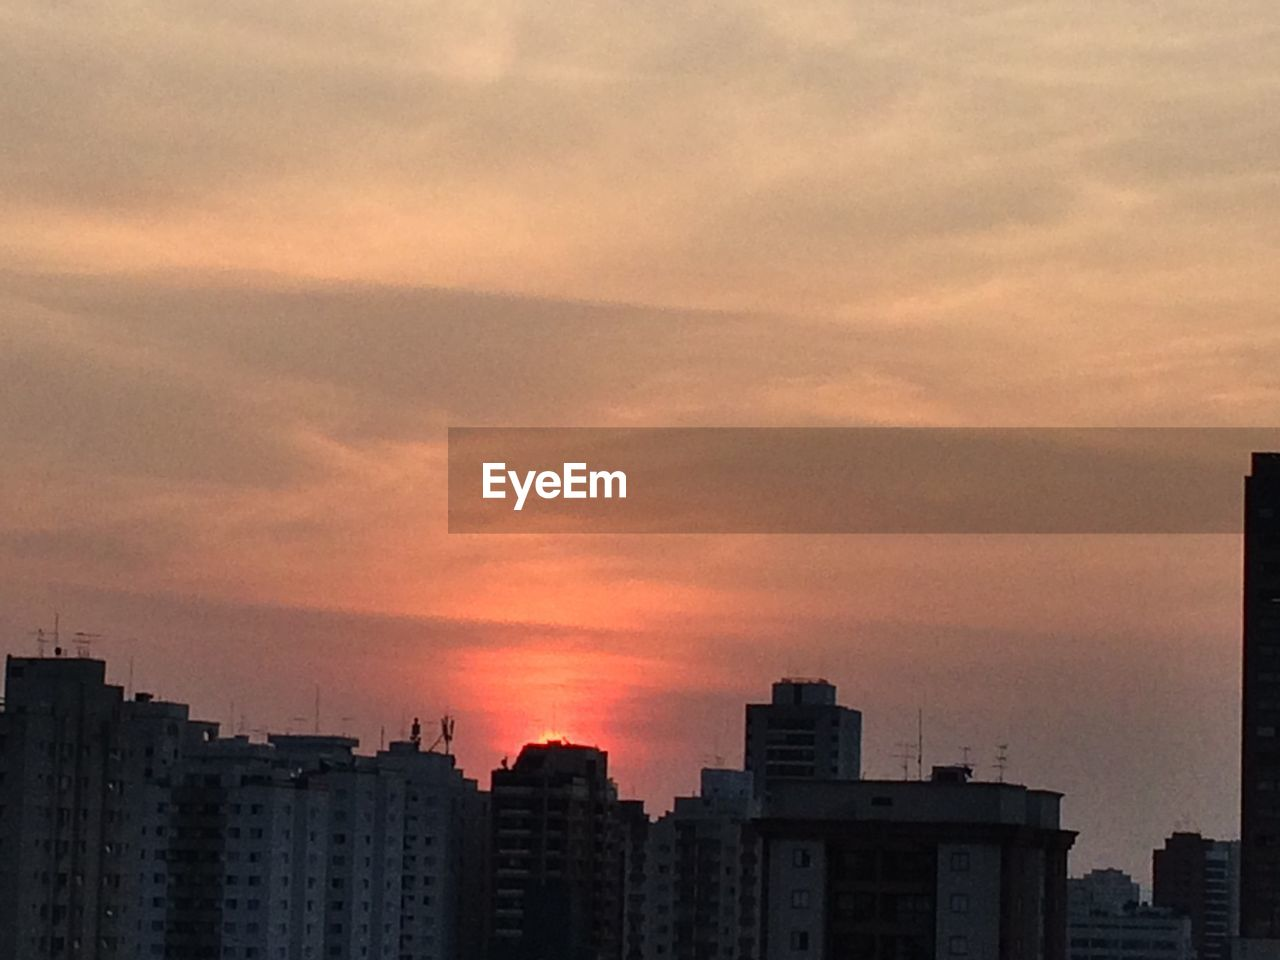 sunset, architecture, building exterior, city, skyscraper, built structure, no people, cityscape, sky, modern, residential, outdoors